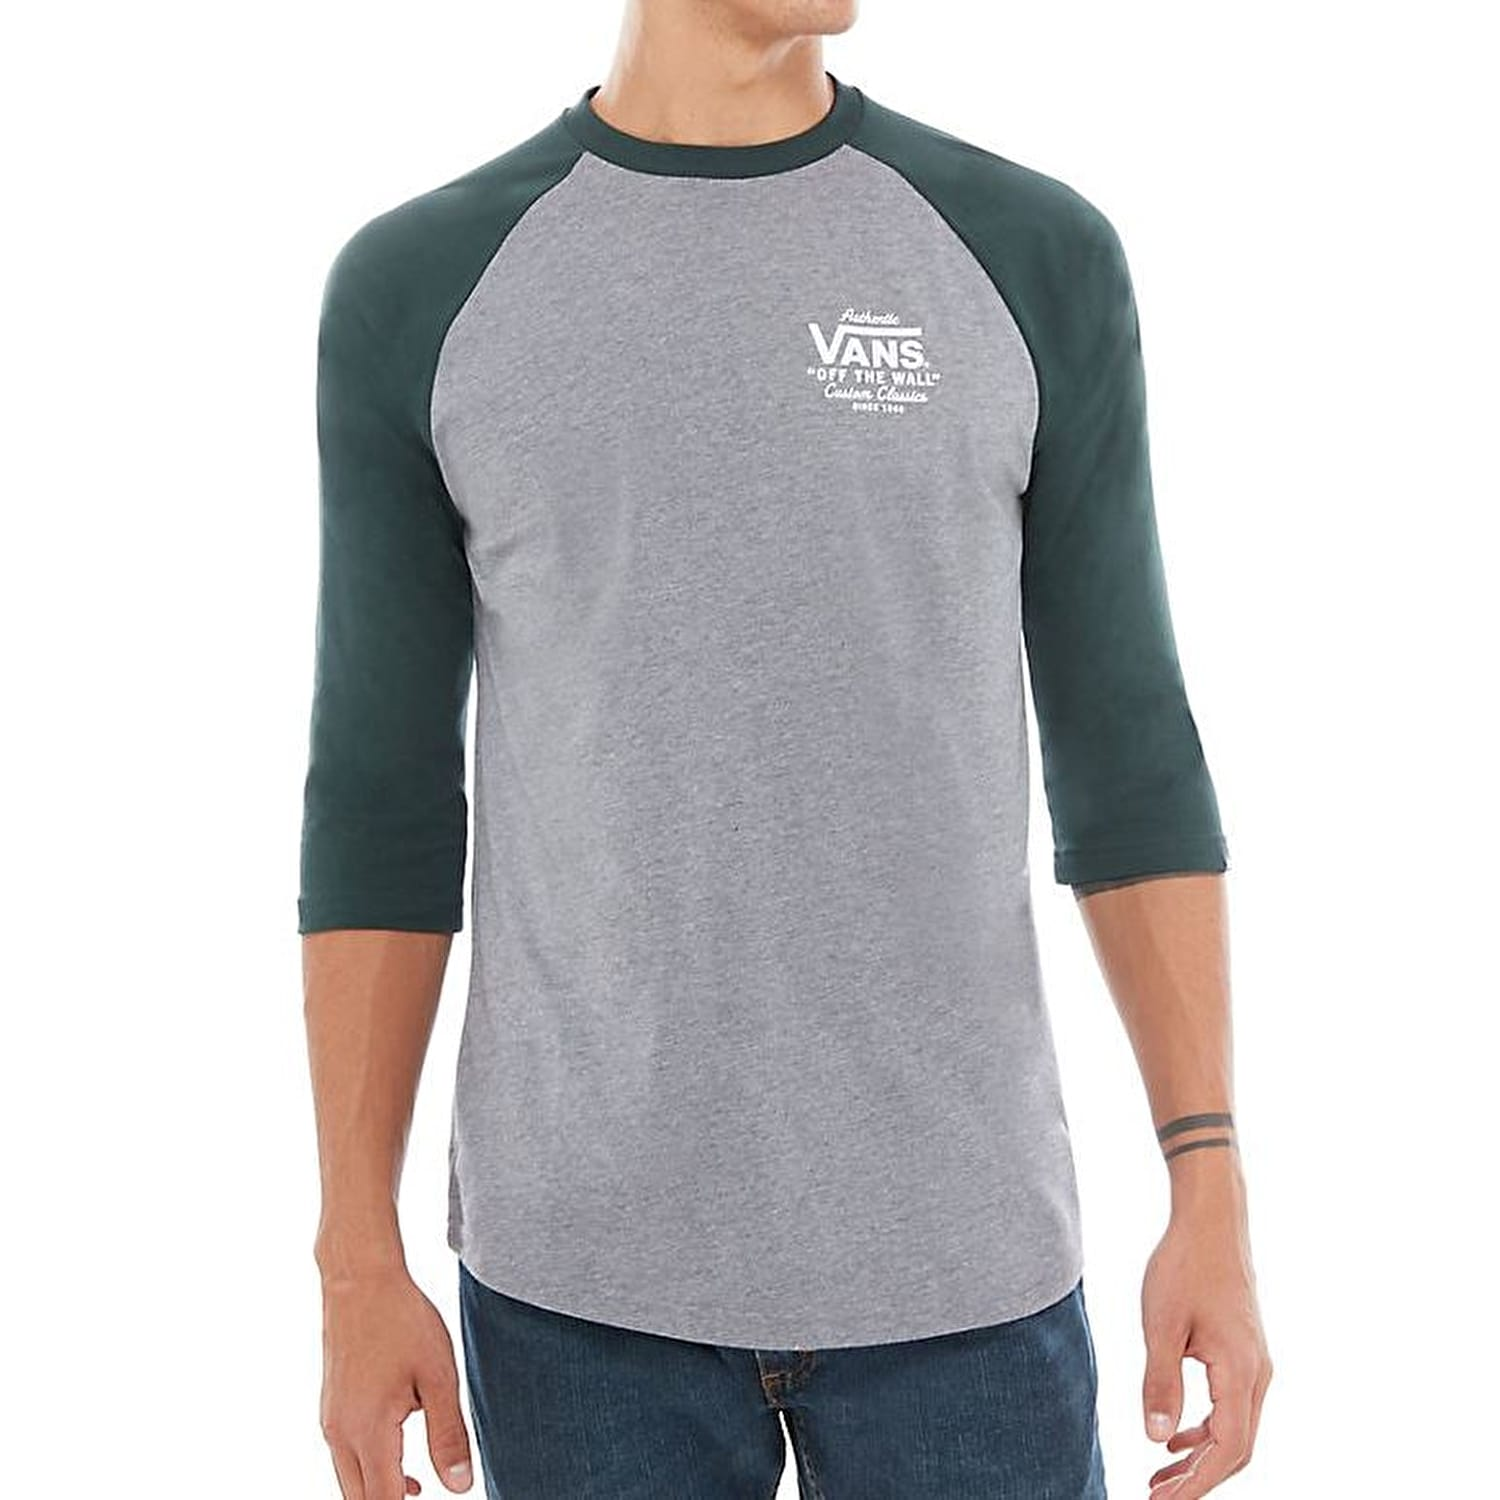 aa1af13efc Vans Holder St Raglan T-Shirt - Heather Grey Vans Scarab